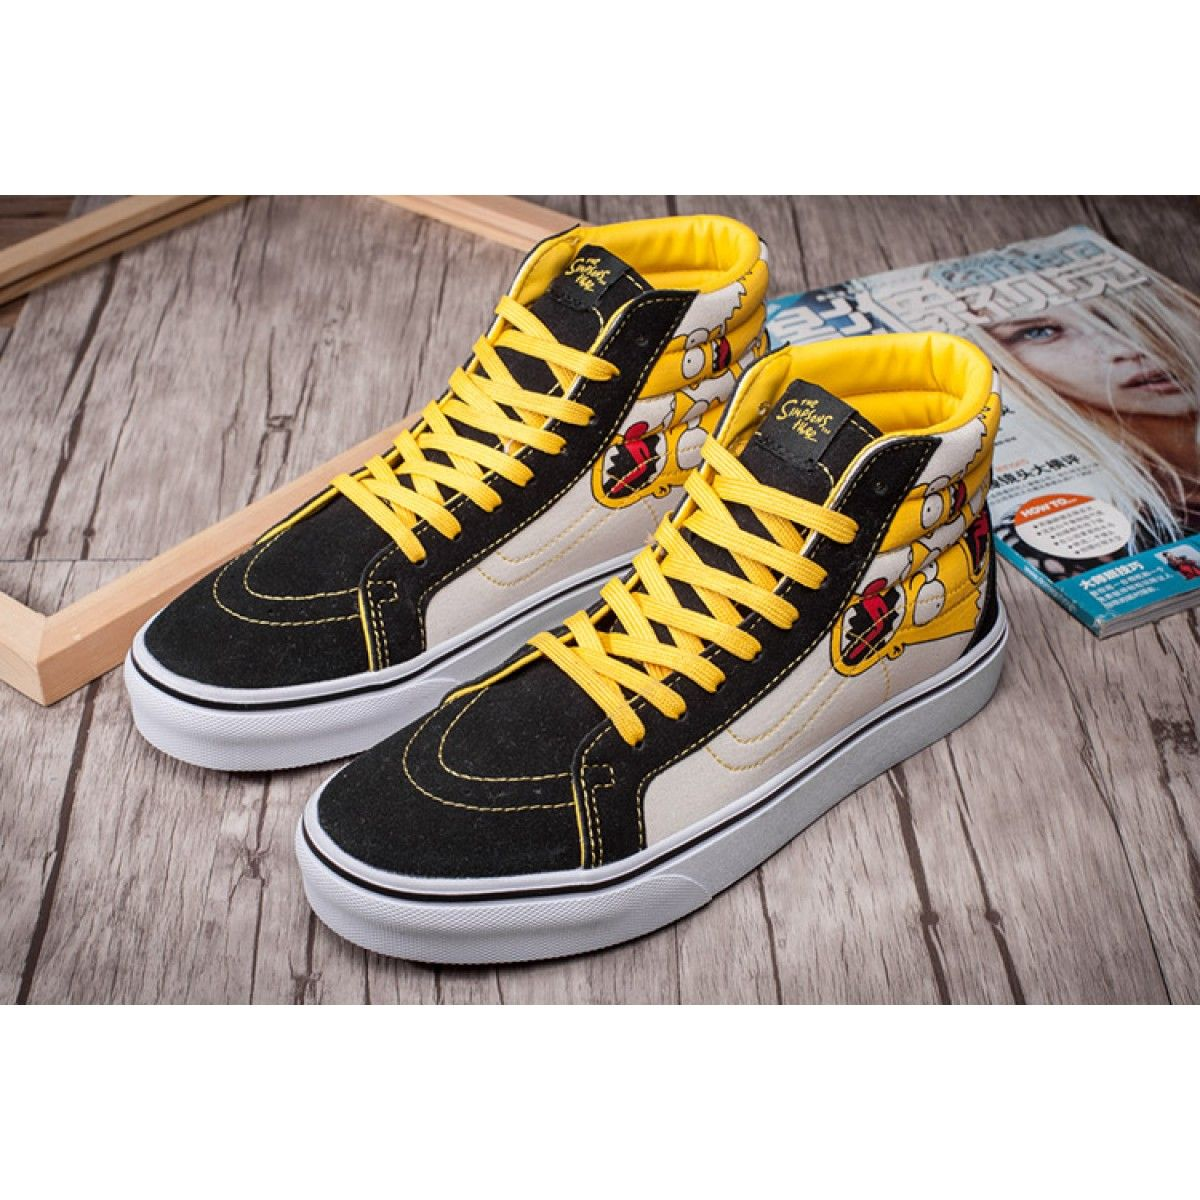 cc0e4cf608 The Simpsons X Vans SK8-Hi Skate Shoes Yellow Black  Vans ...